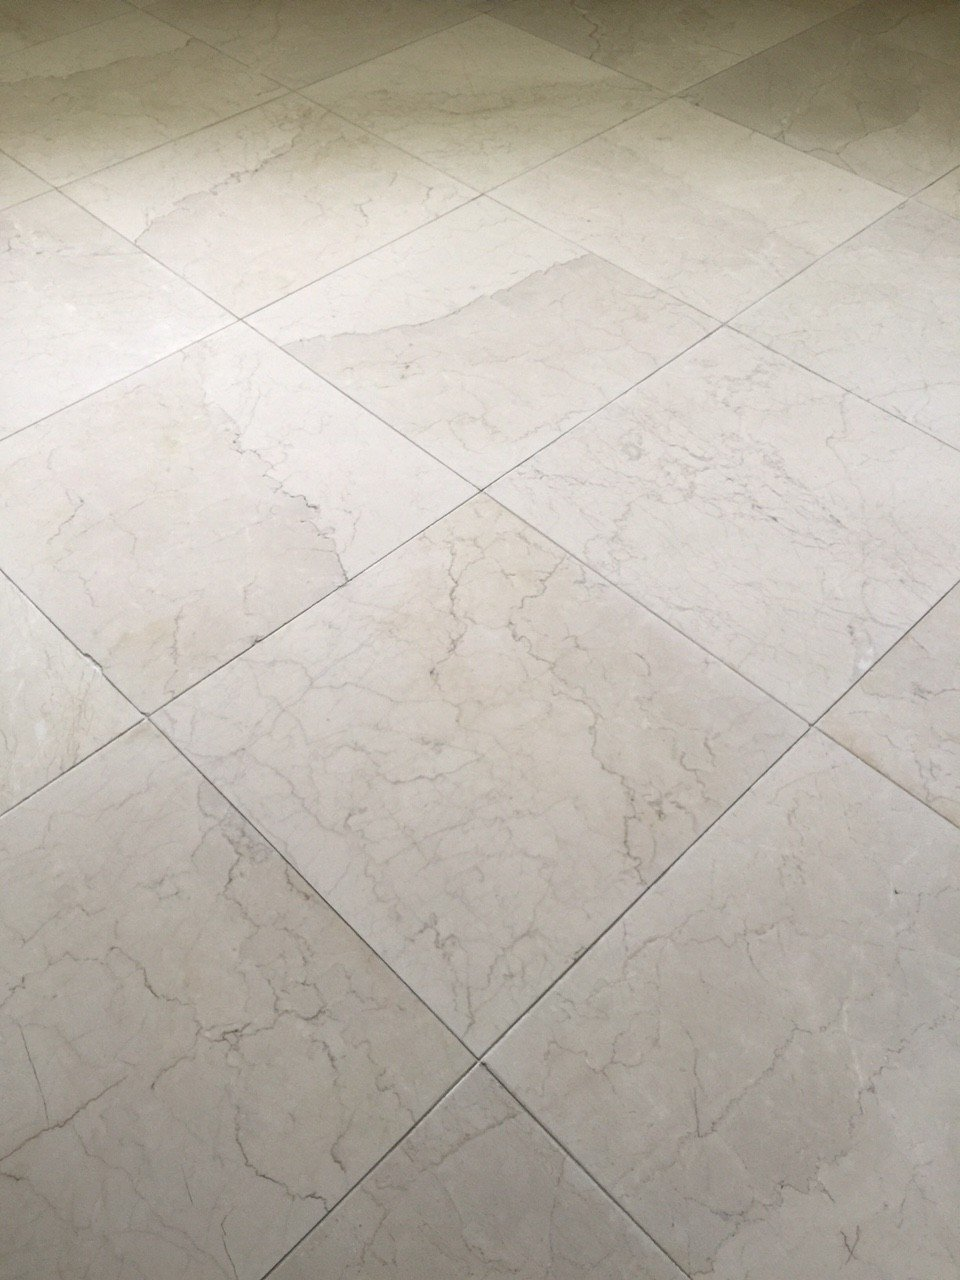 professional tile and grout cleaning - port charlotte, fl - grout